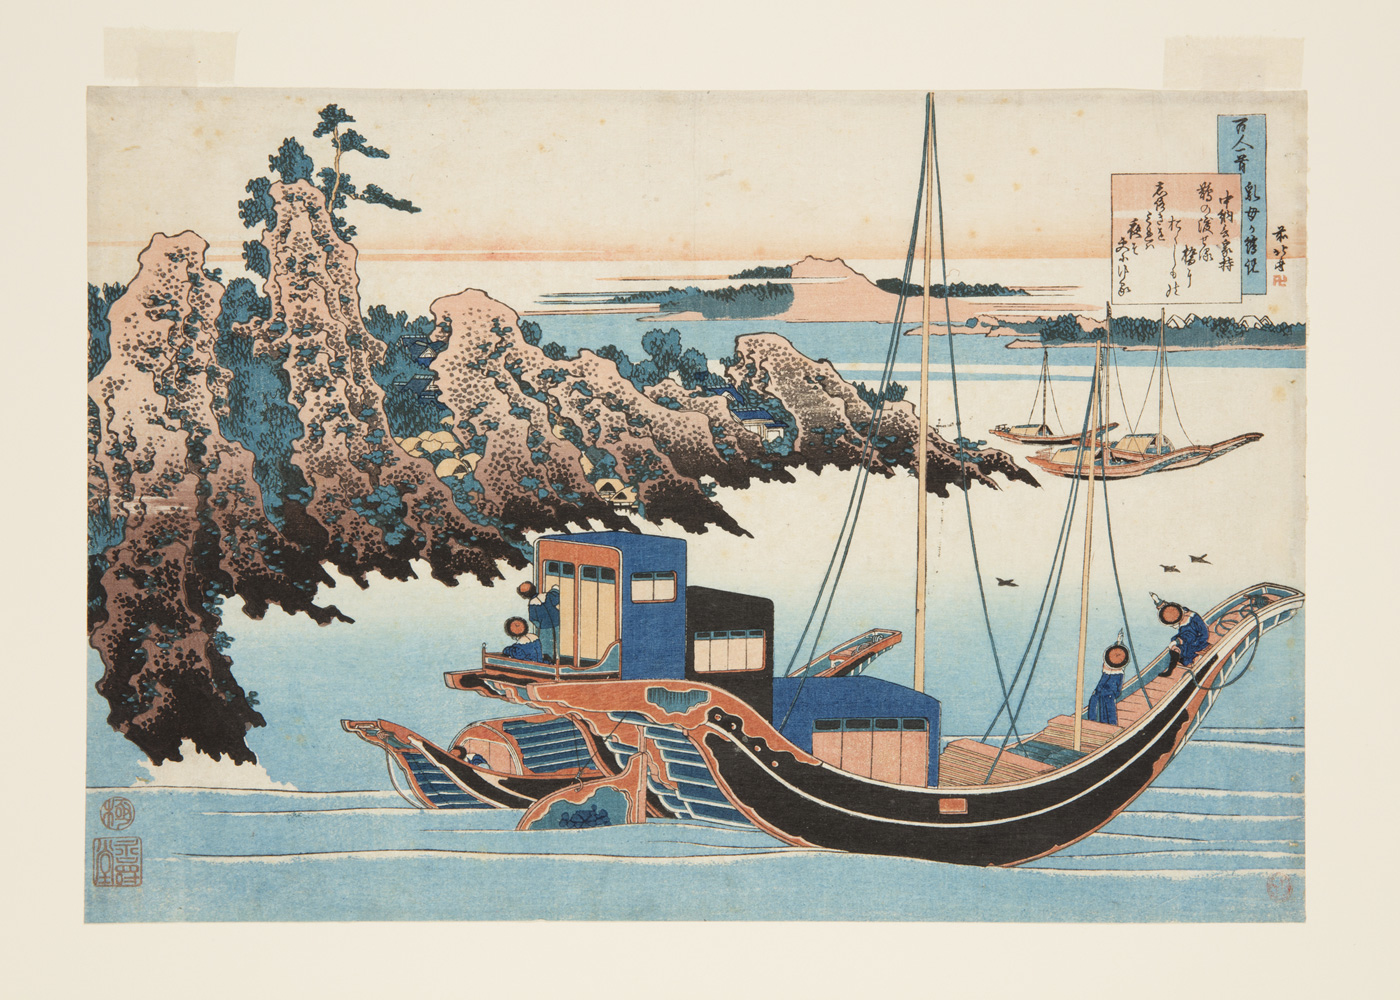 Japanese print of a seascape. Boats sail on the water, the coast is mountainous and wooded.